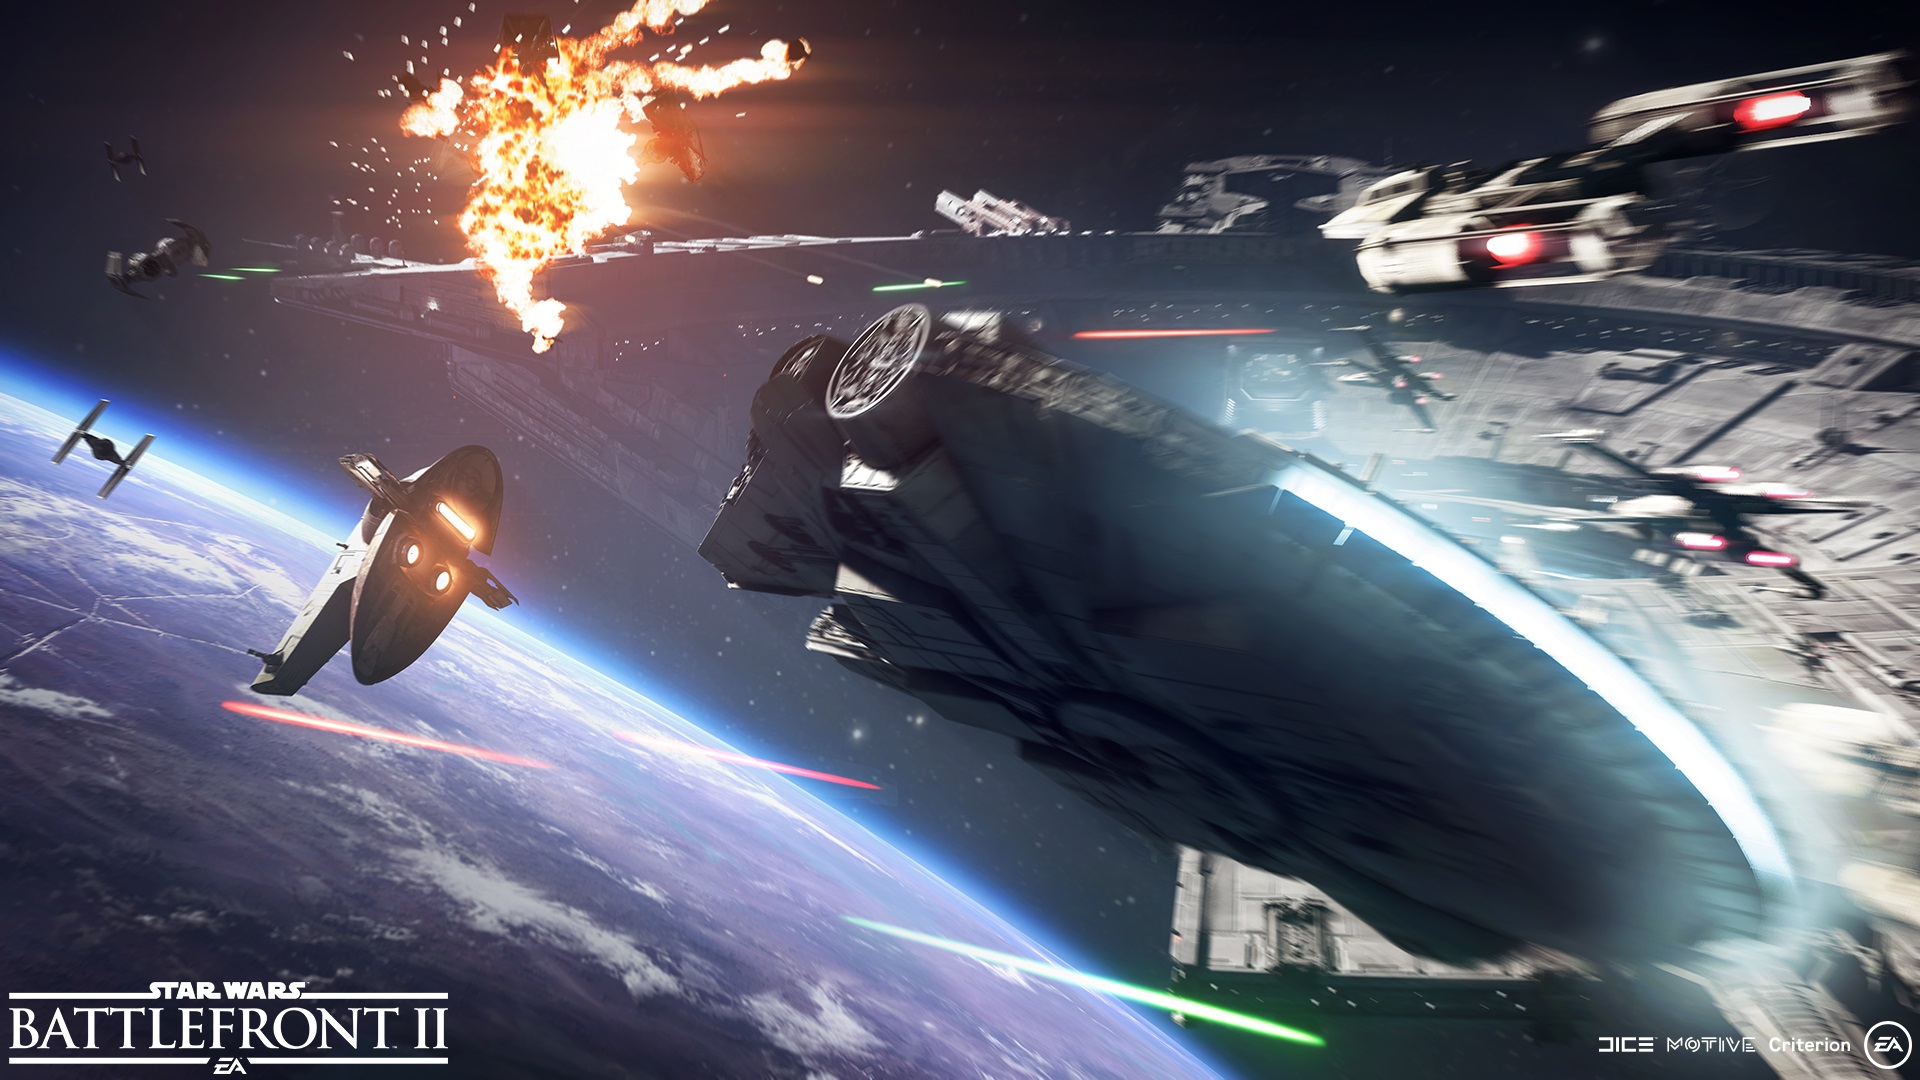 Star Wars Space Battle Wallpaper Star Wars Battlefront 2